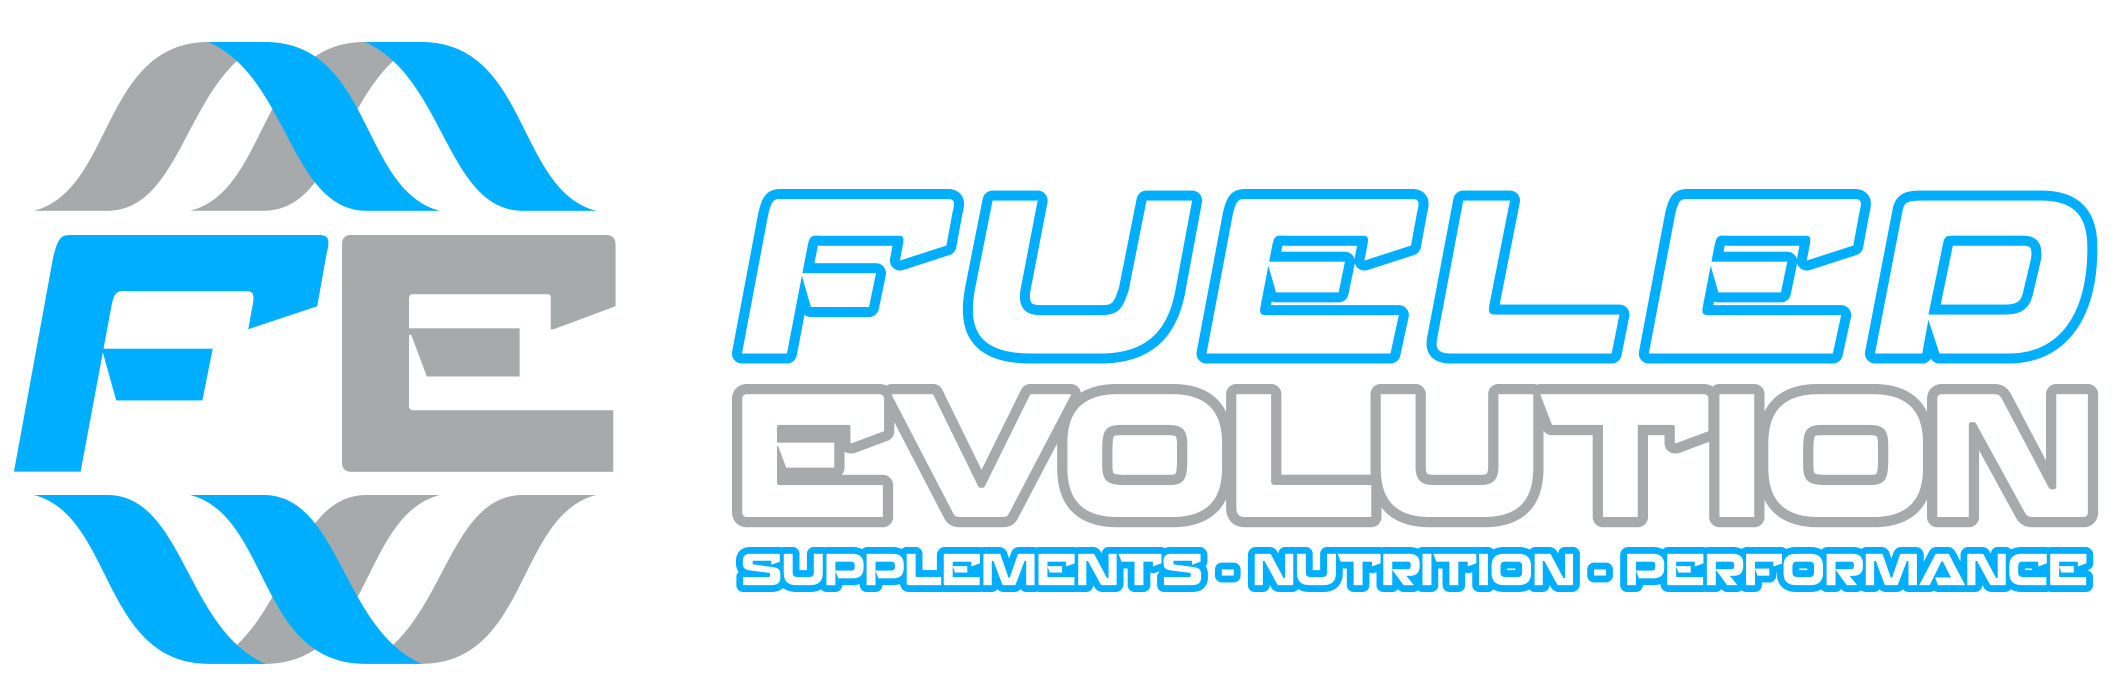 Fueled Evolution Supplements.Nutrition.Performance